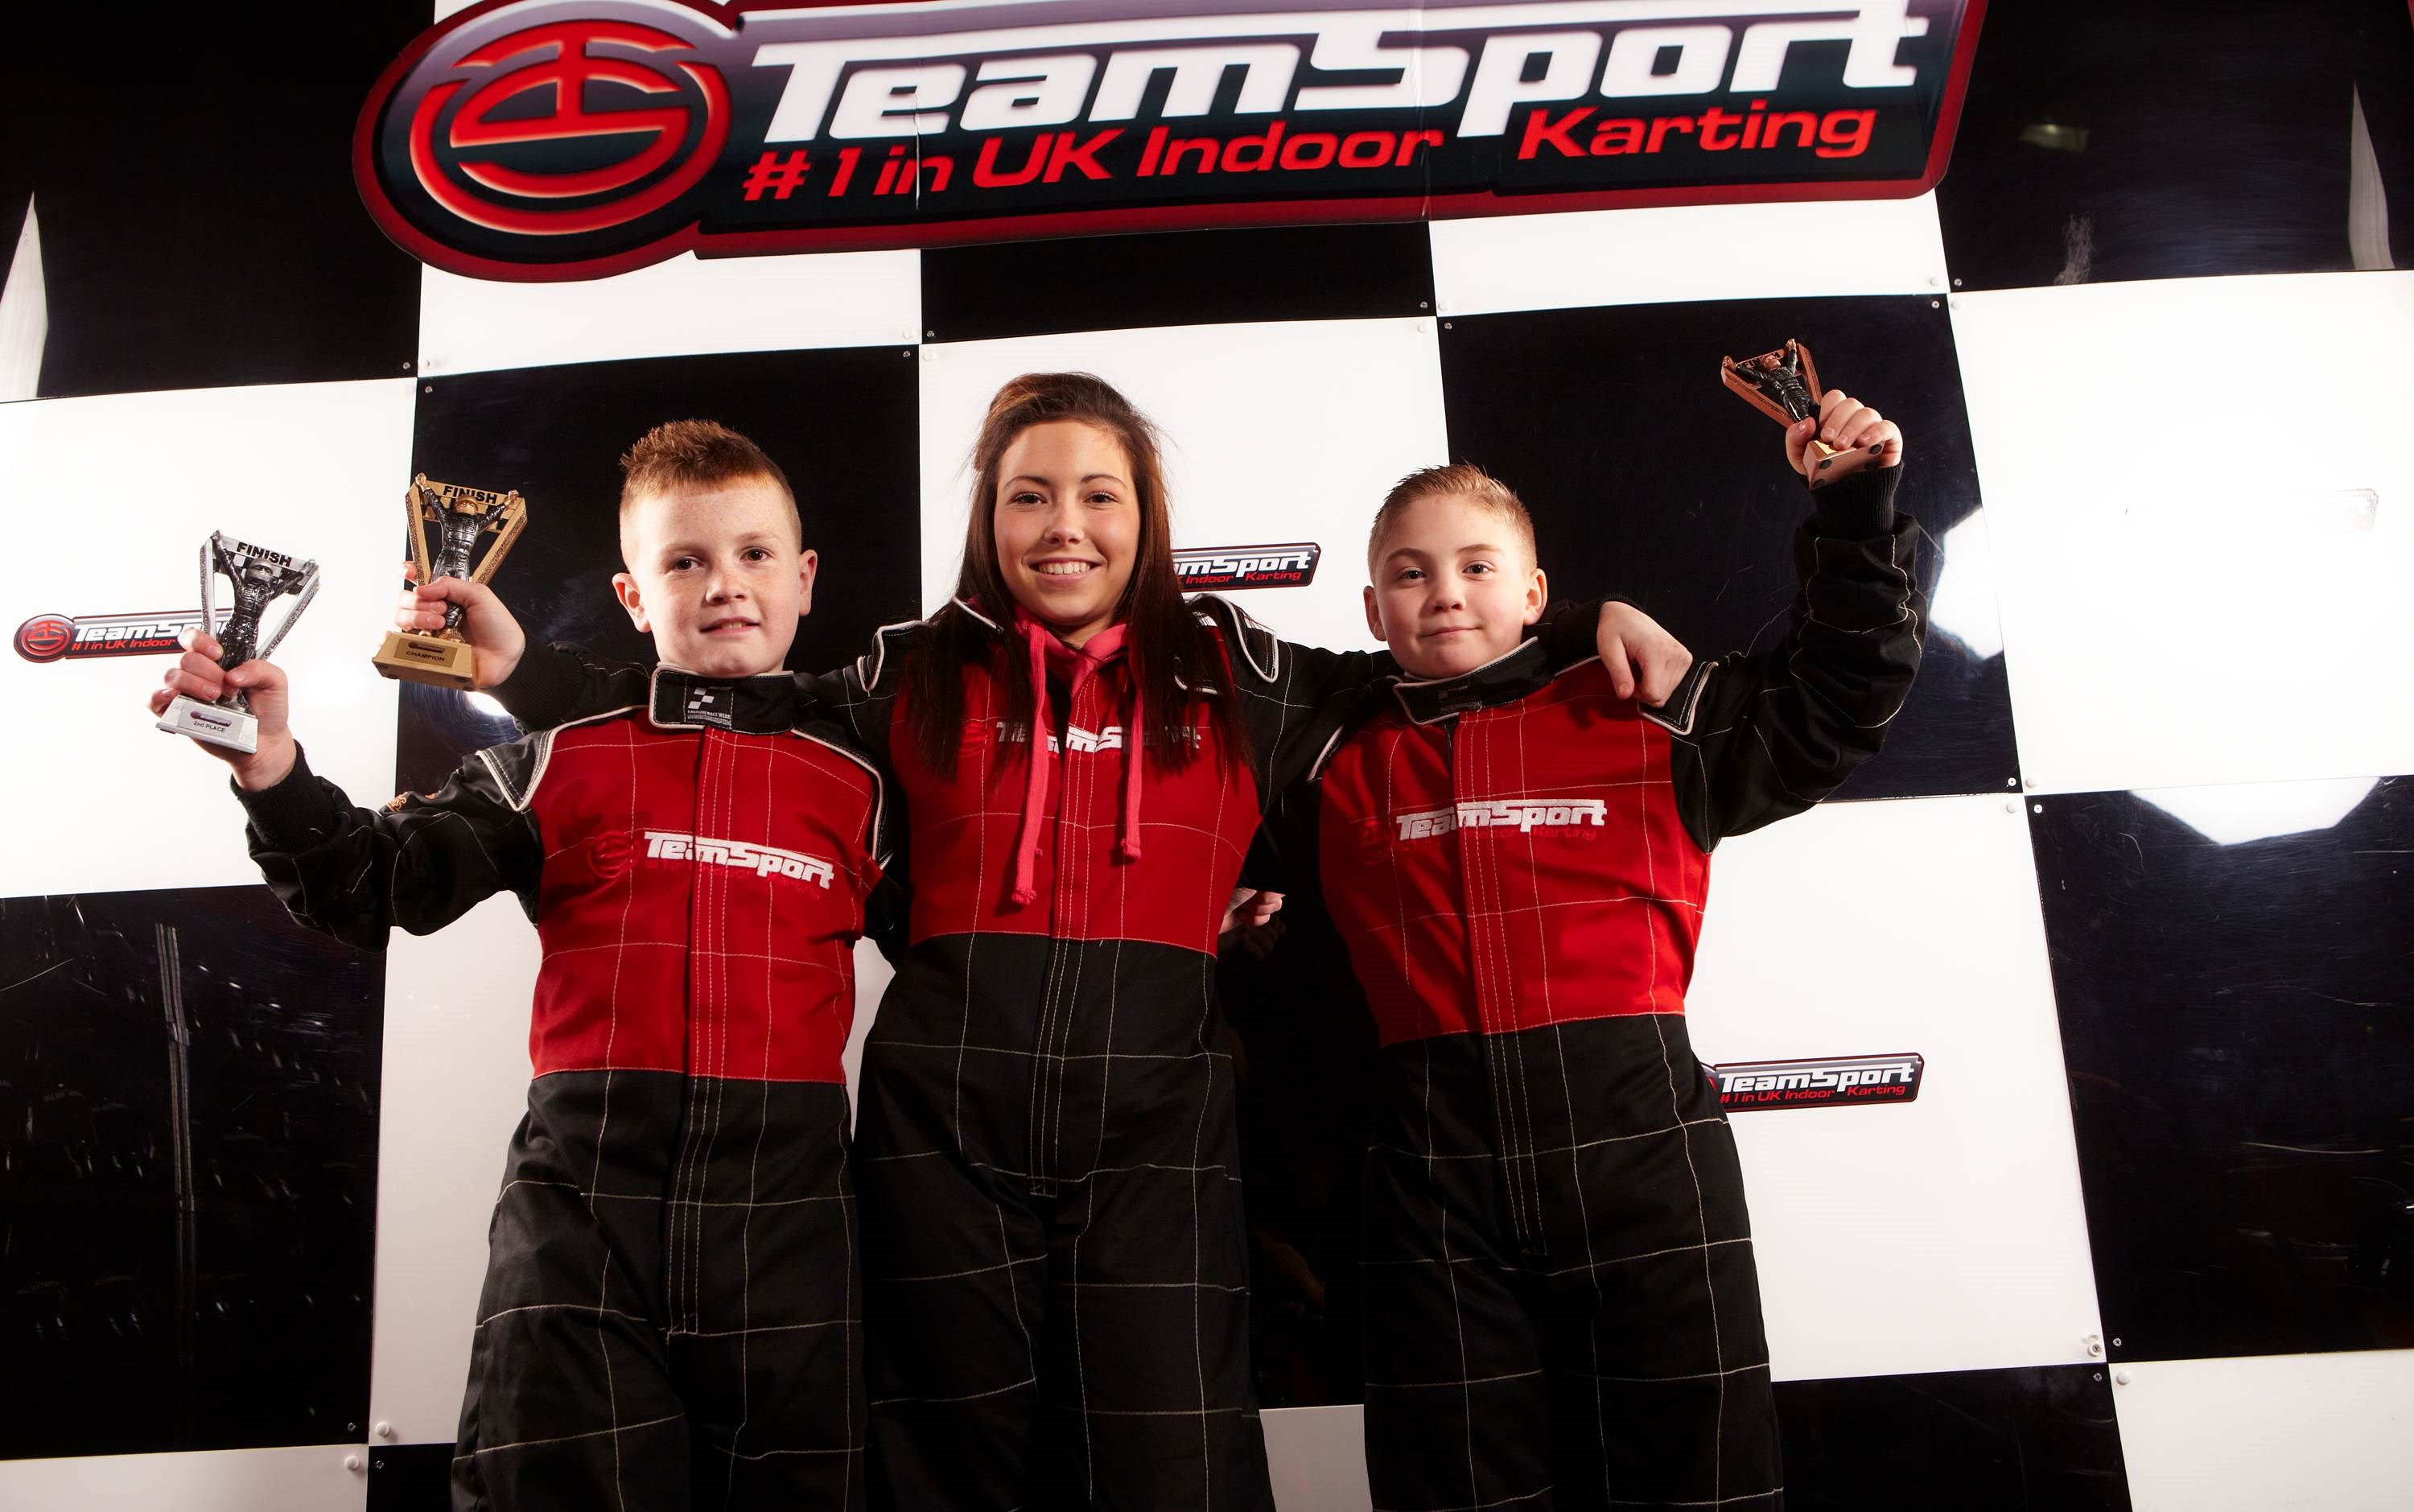 Kids Go Karting - Kids Go Karting Parties